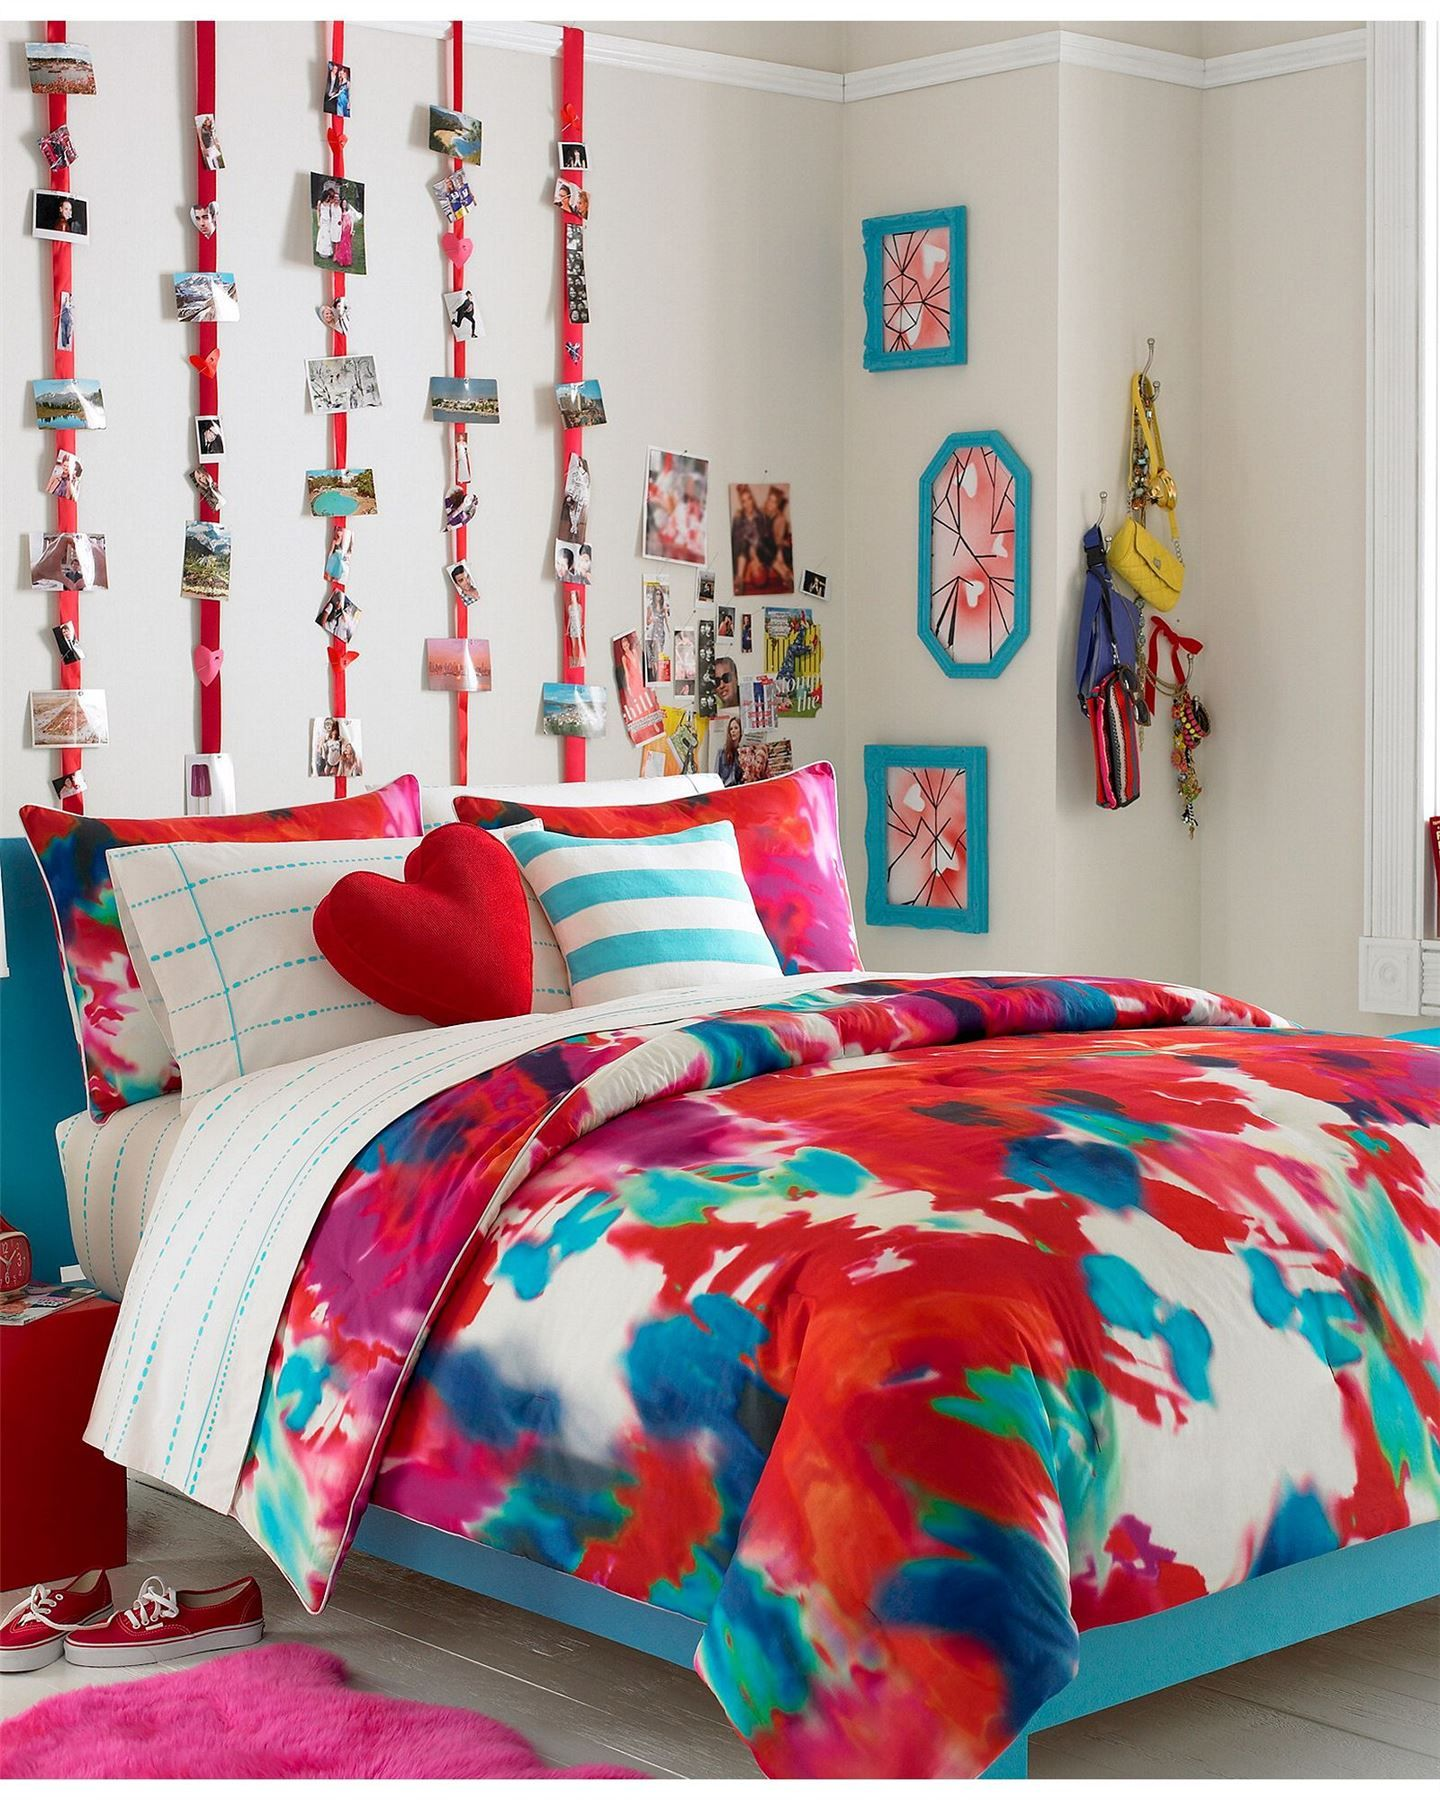 Floral bedding tumblr - Teenage Girl Bedroom Ideas With Vogue Bedding Bedding Linen Bedroom Colorful Bed With Red Heart And